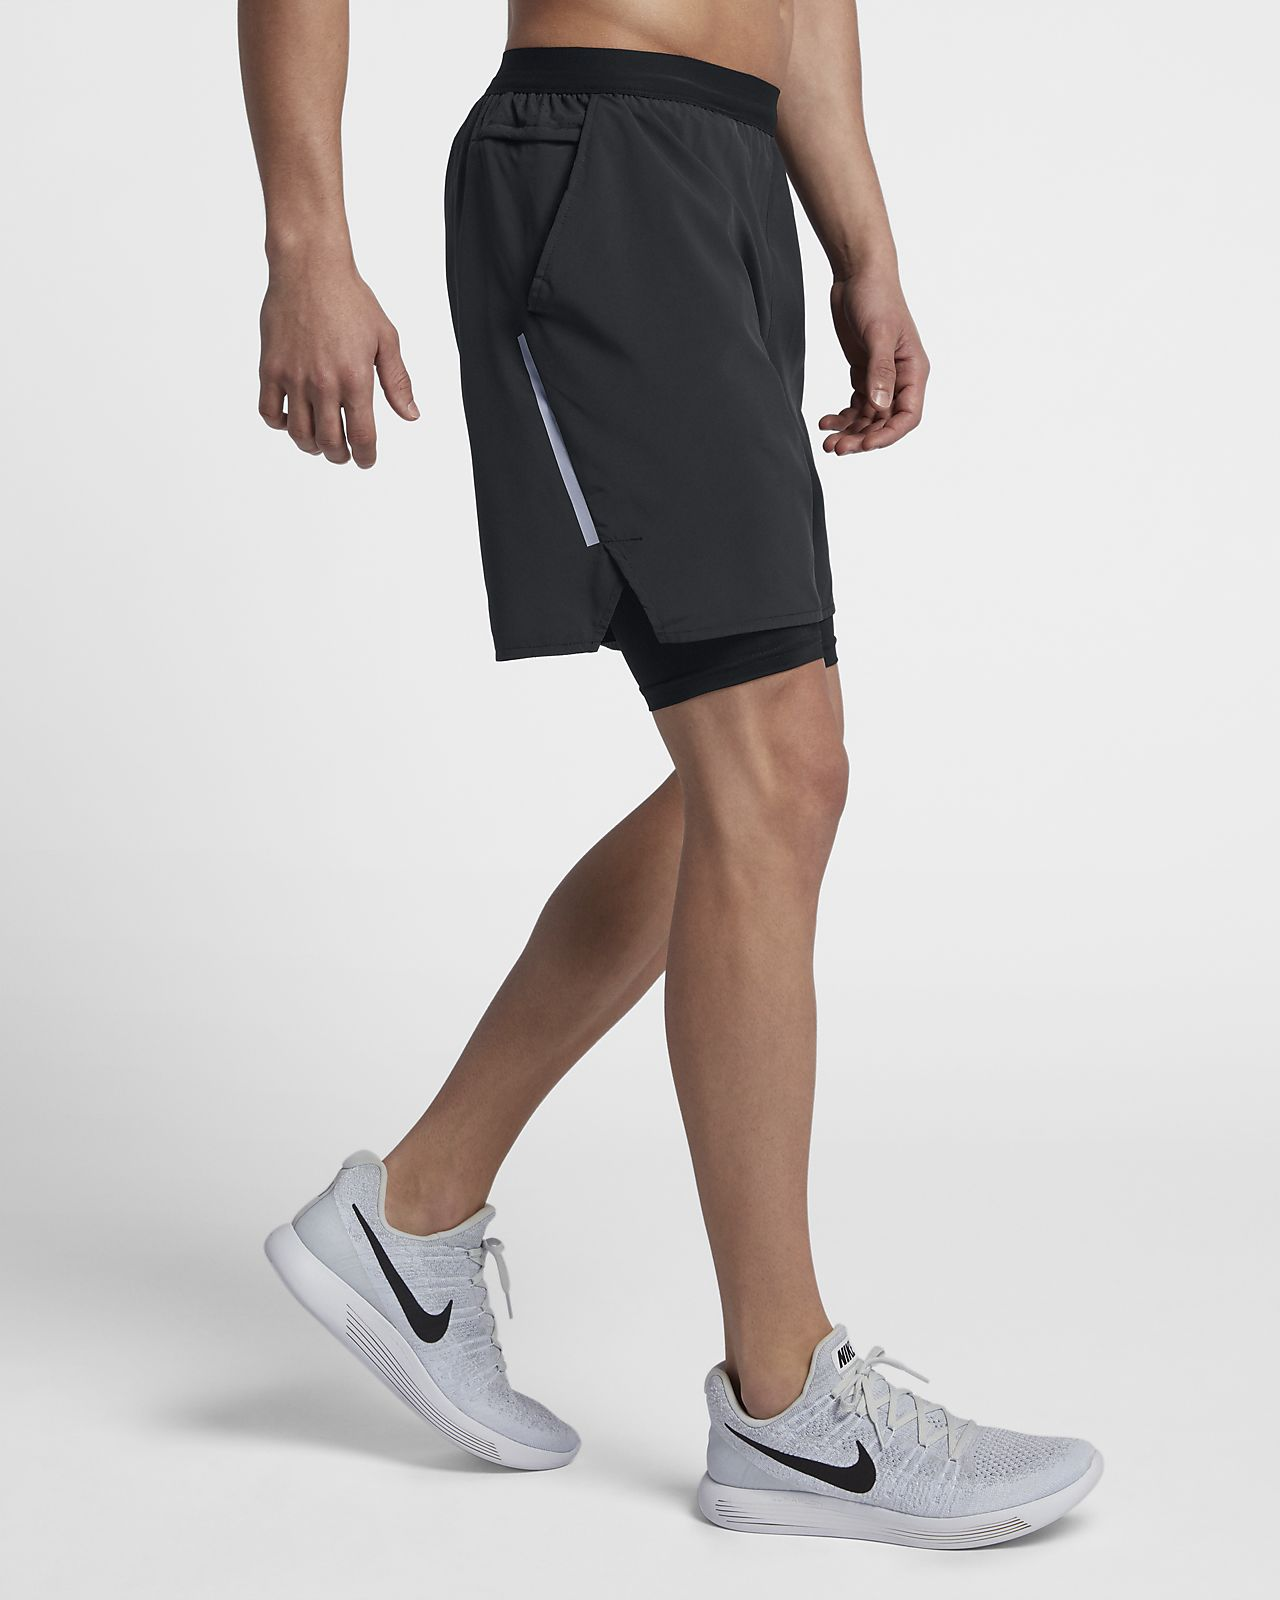 6094e97f8ff12 Nike Distance 2-in-1 Men s 7